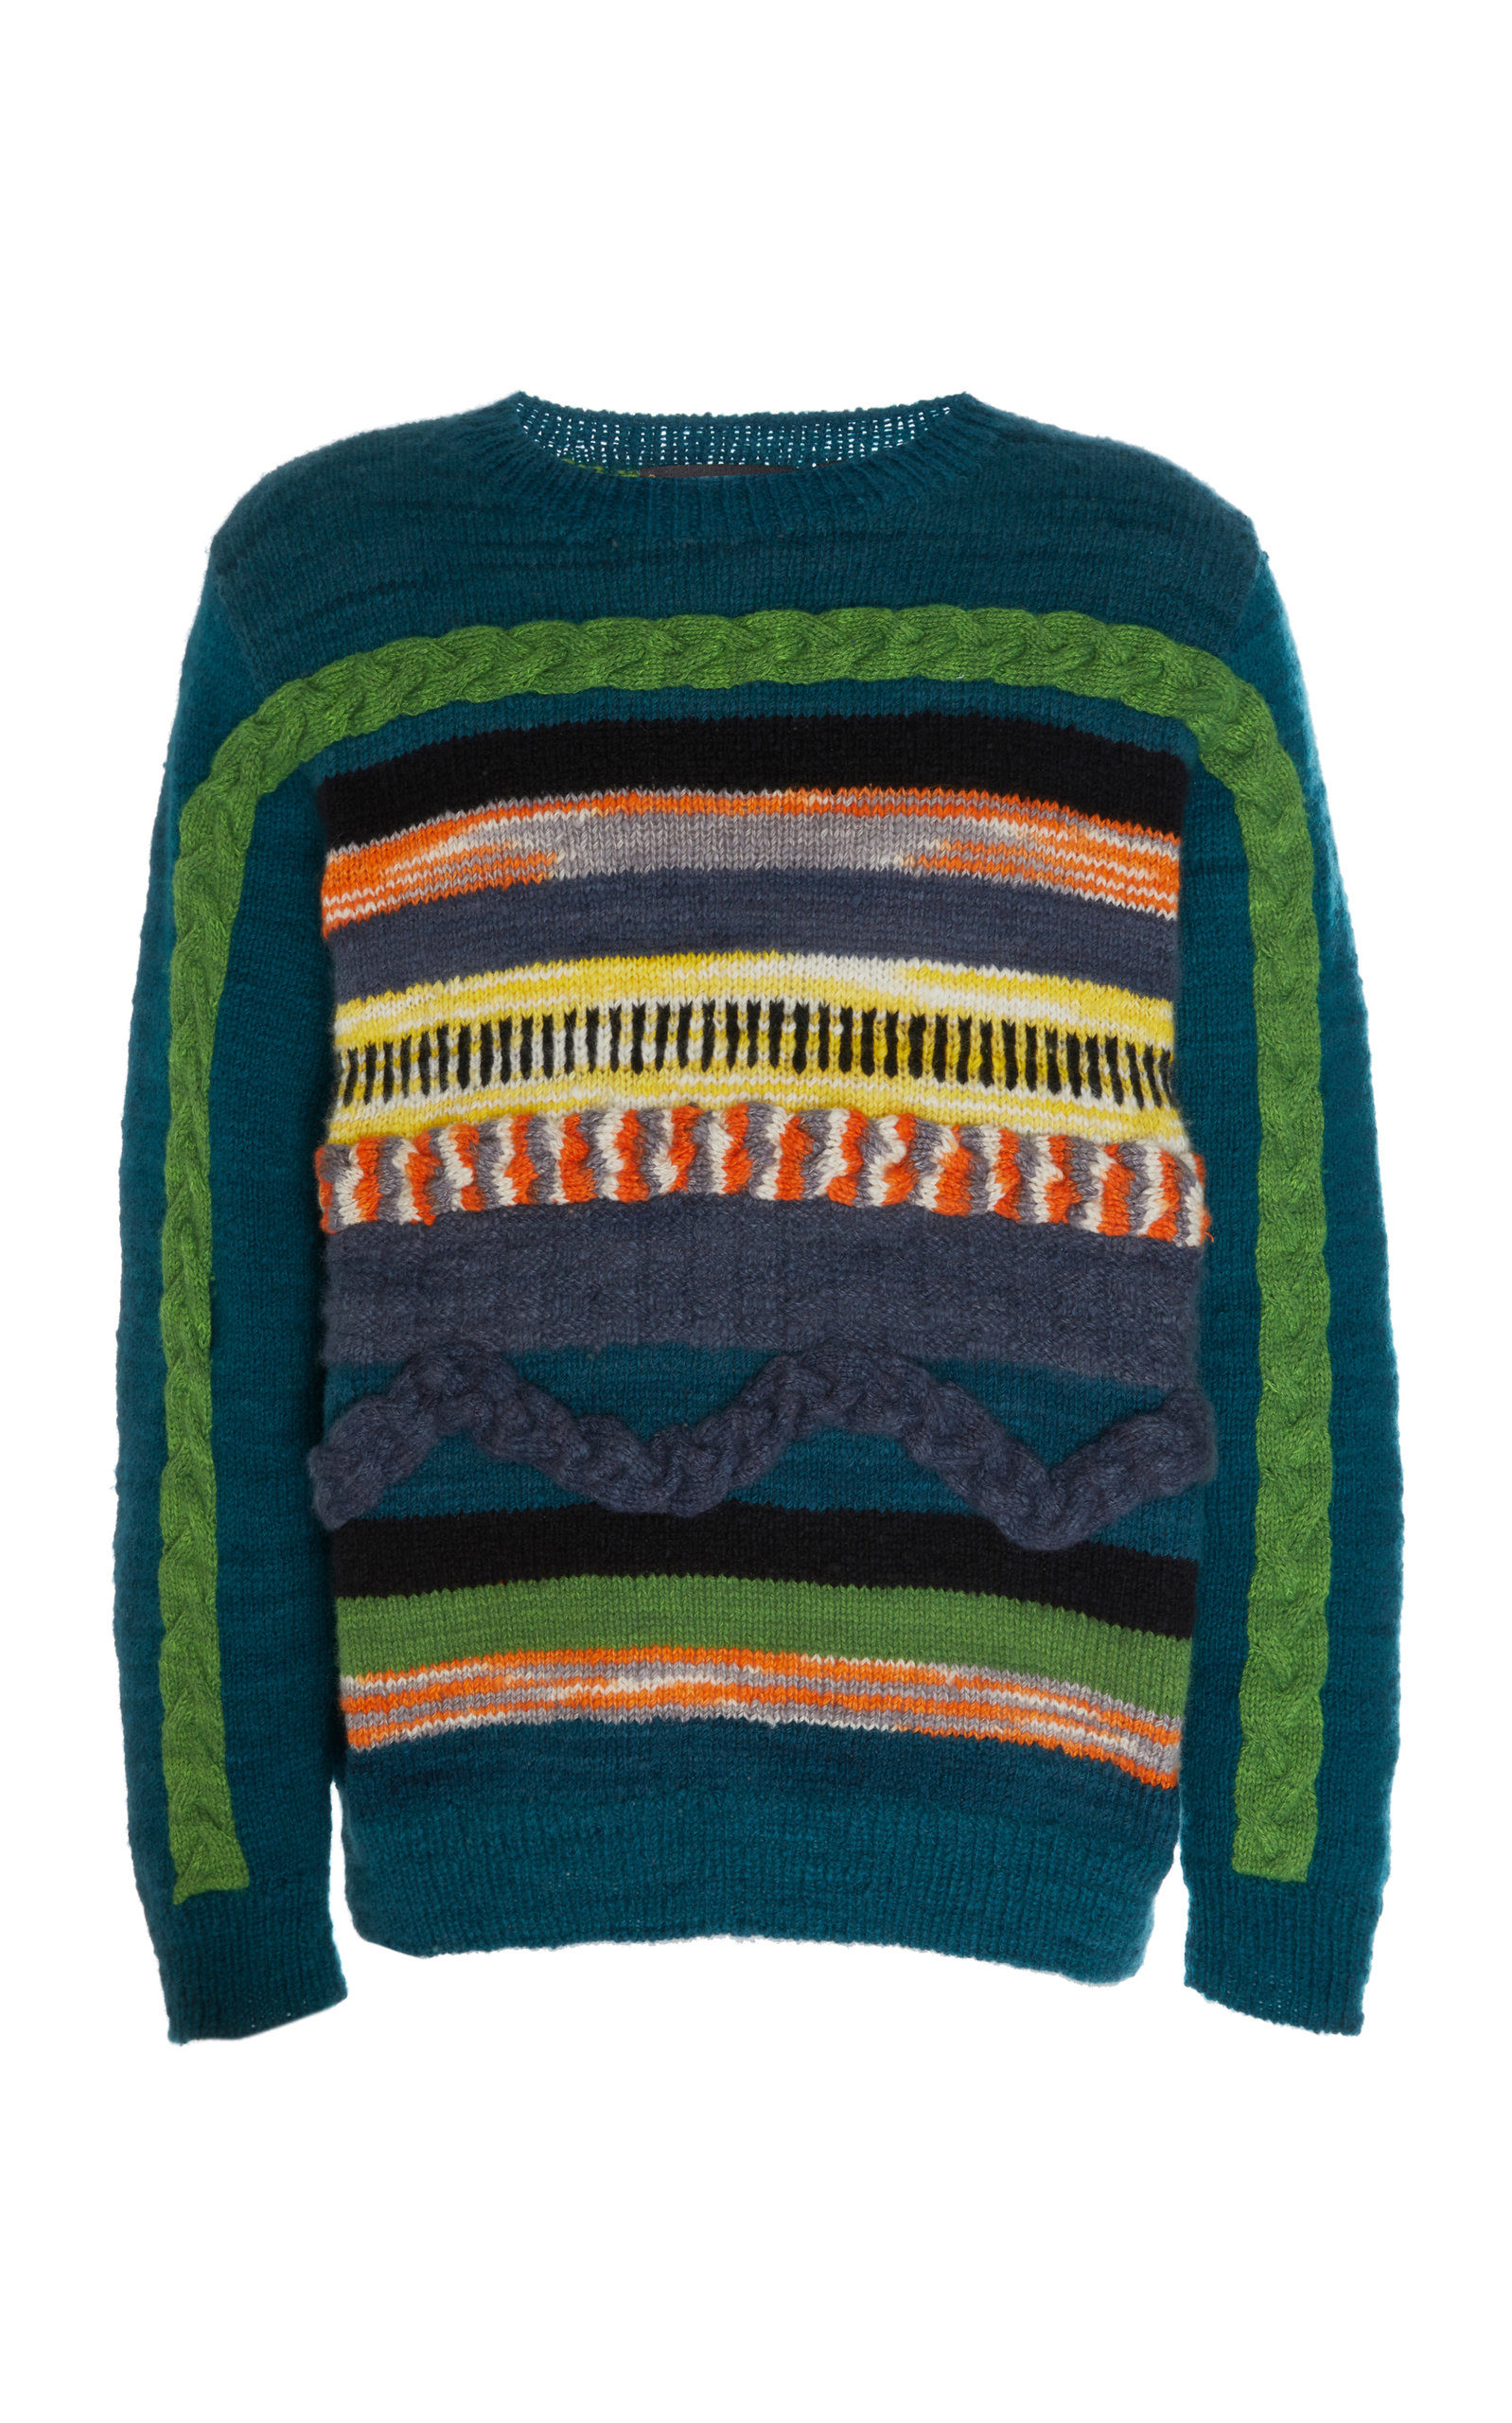 The Elder Statesman Knits SOUTH AMERICAN HAND KNIT 3-D CABLES CREWNECK